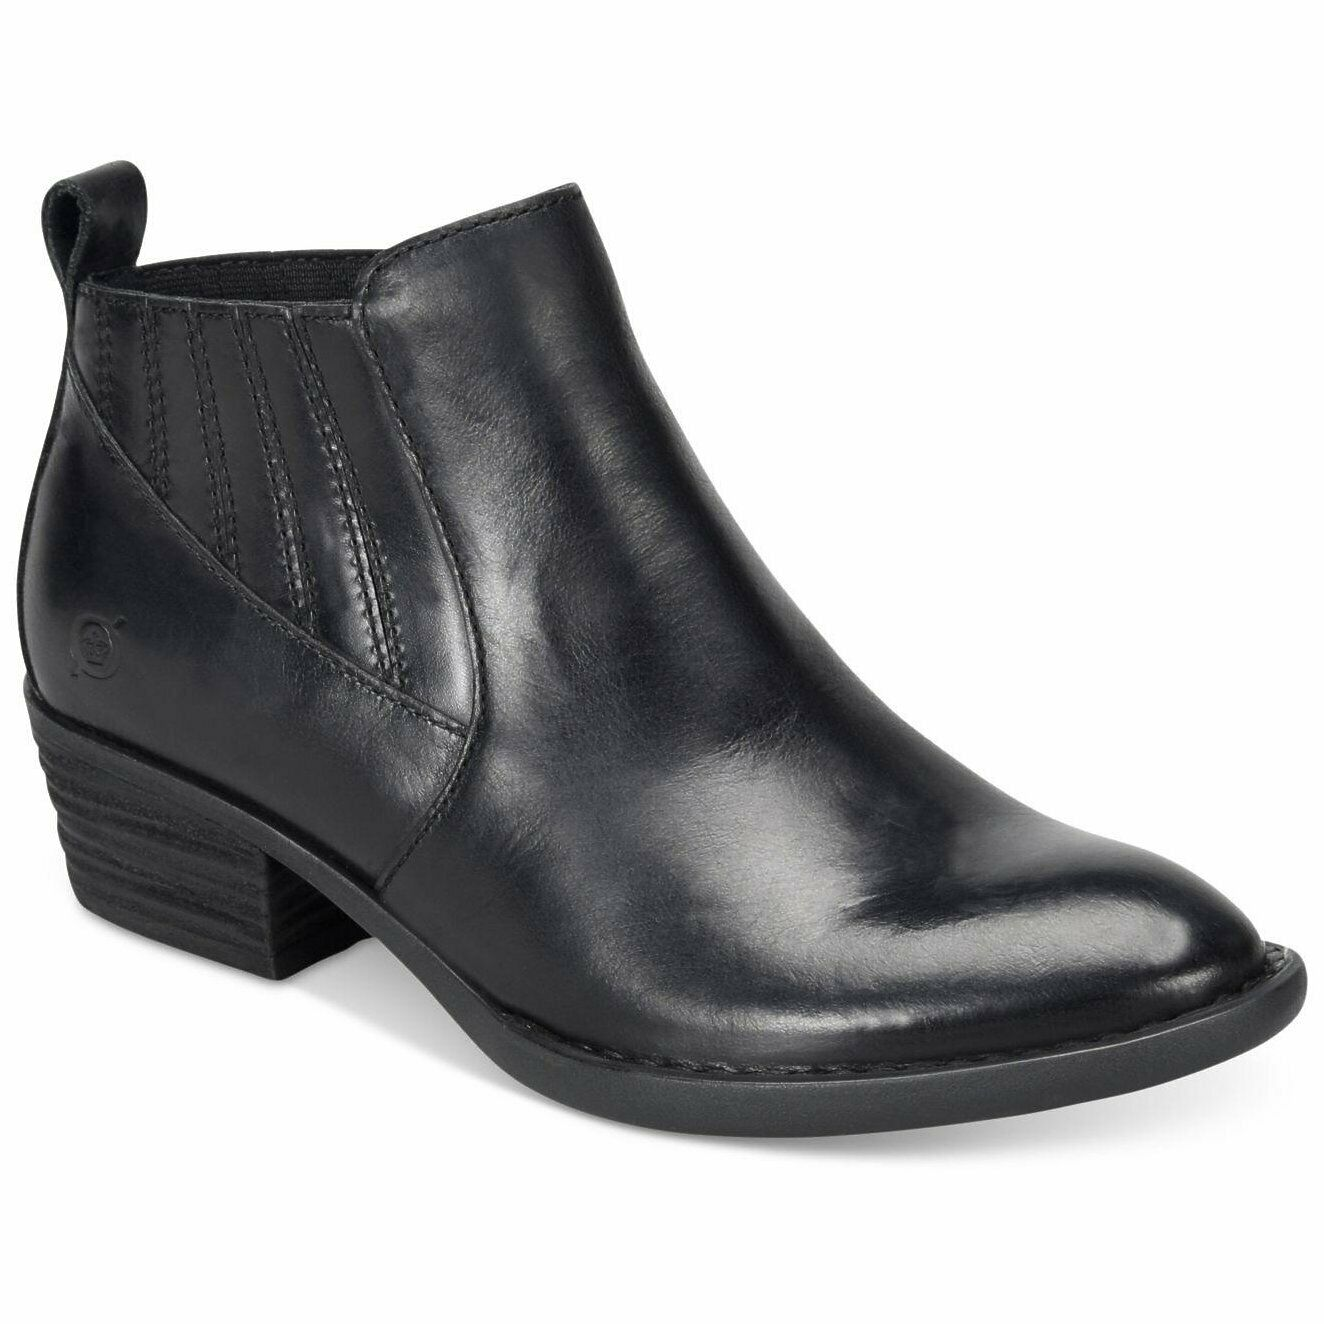 Born Beebe Beebe Beebe Leather Ankle Boots Pointed Toe BLACK Leather Faashion Size 6 M 4ea065